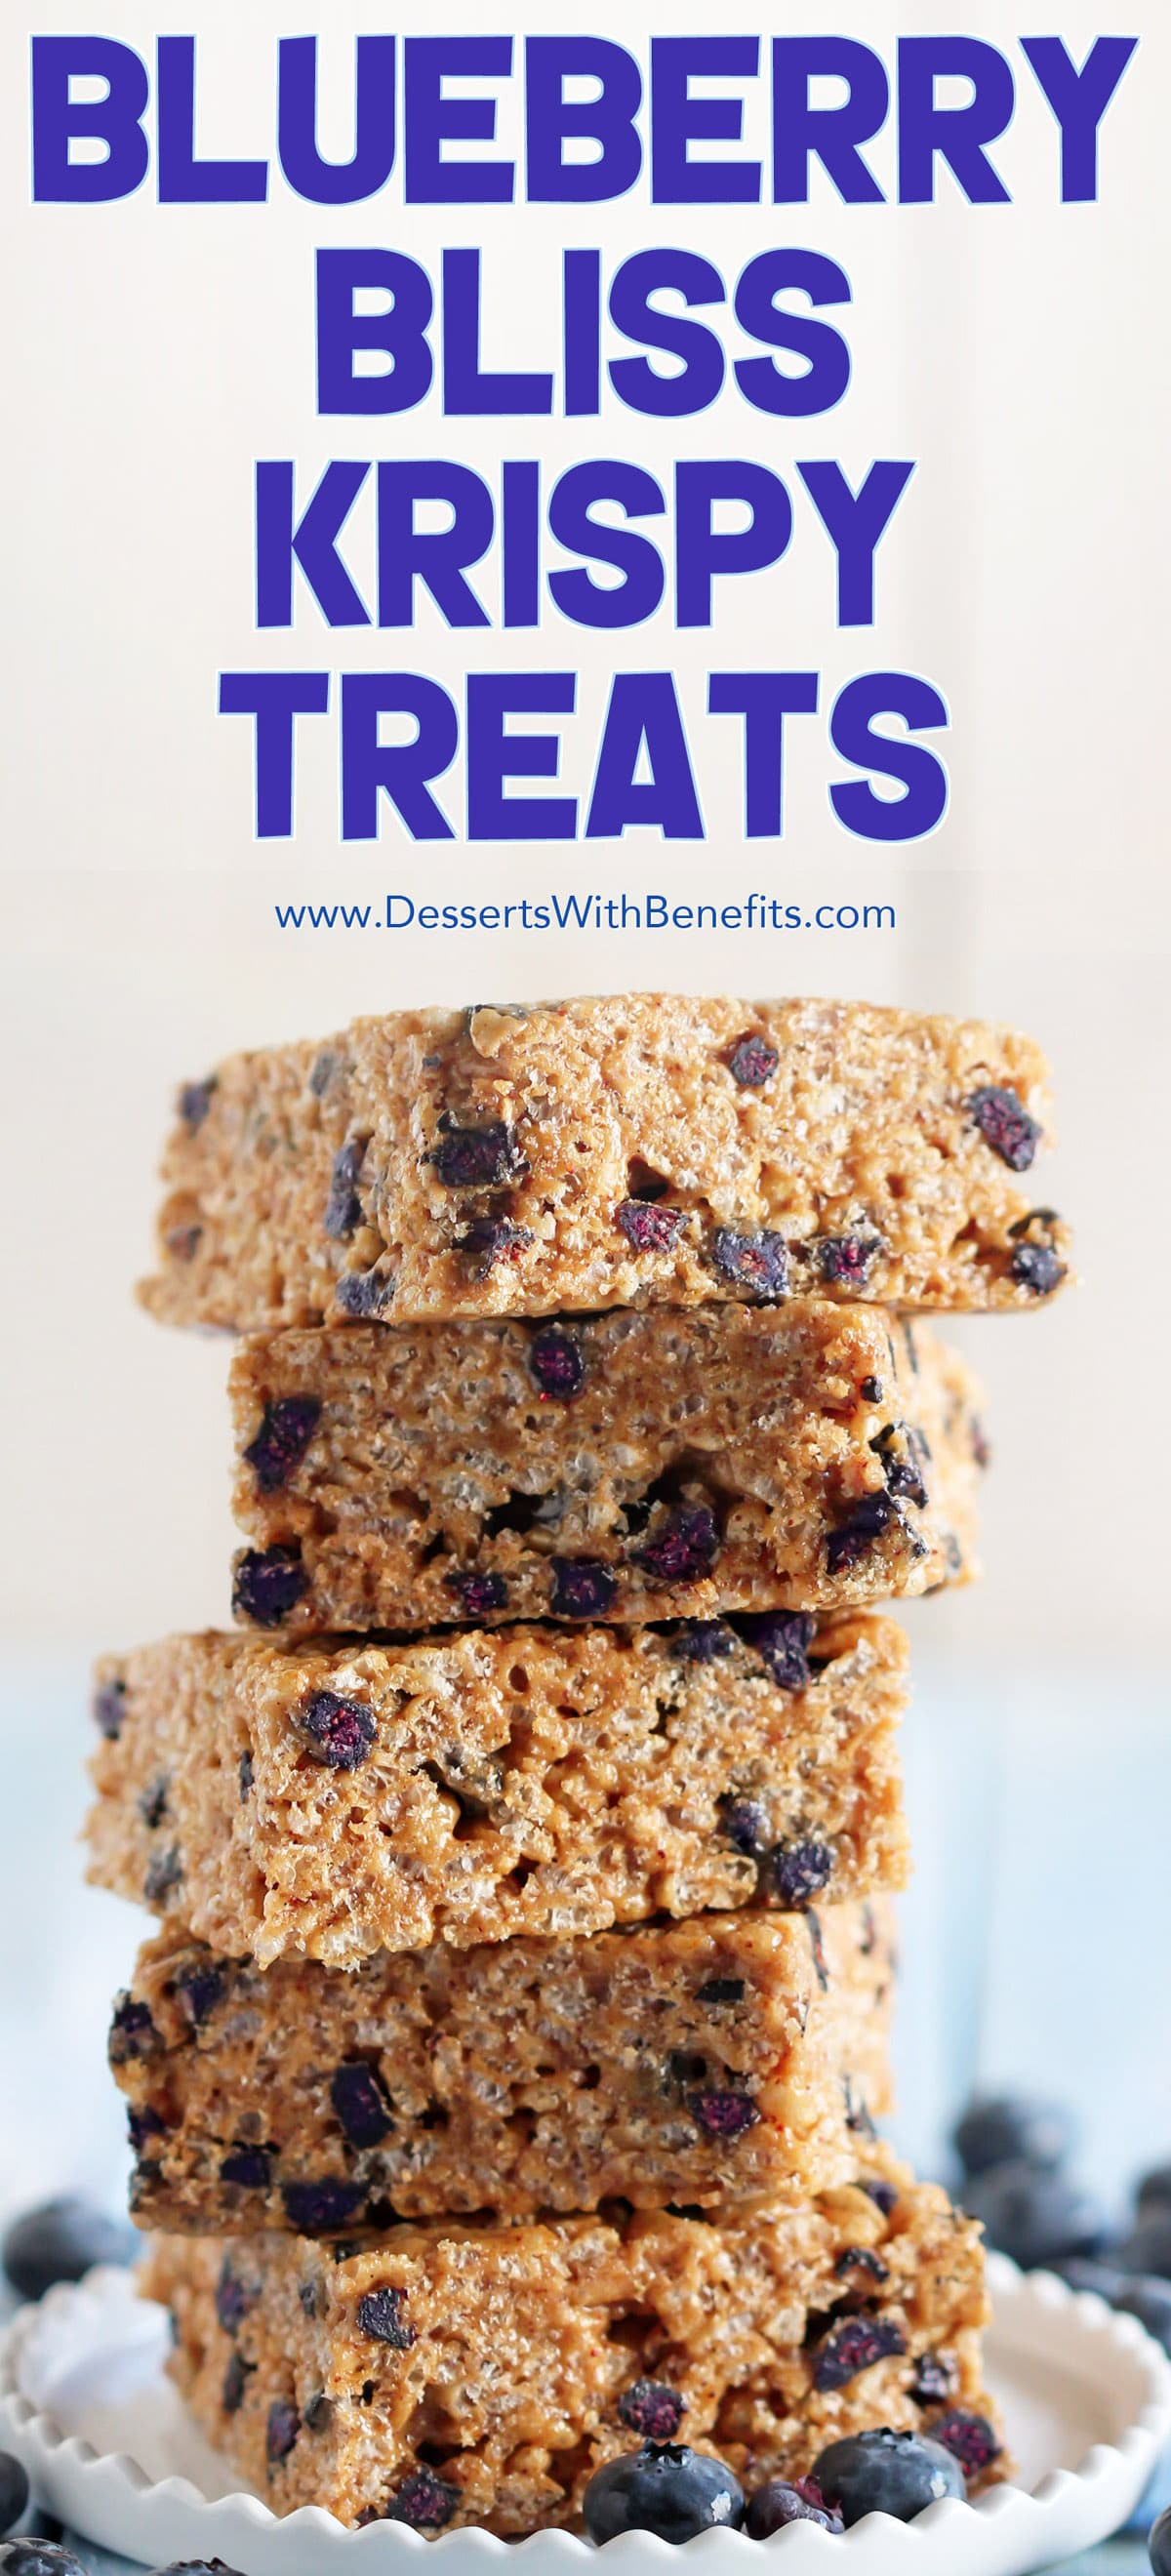 These Blueberry Bliss Krispy Treats are secretly healthy -- made with whole grain brown rice cereal, low glycemic raw honey, delicious almond butter, and a sprinkling of protein powder. It's crispy and chewy, but without the butter and sugary, high-fructose corn-syrup-laden marshmallows.